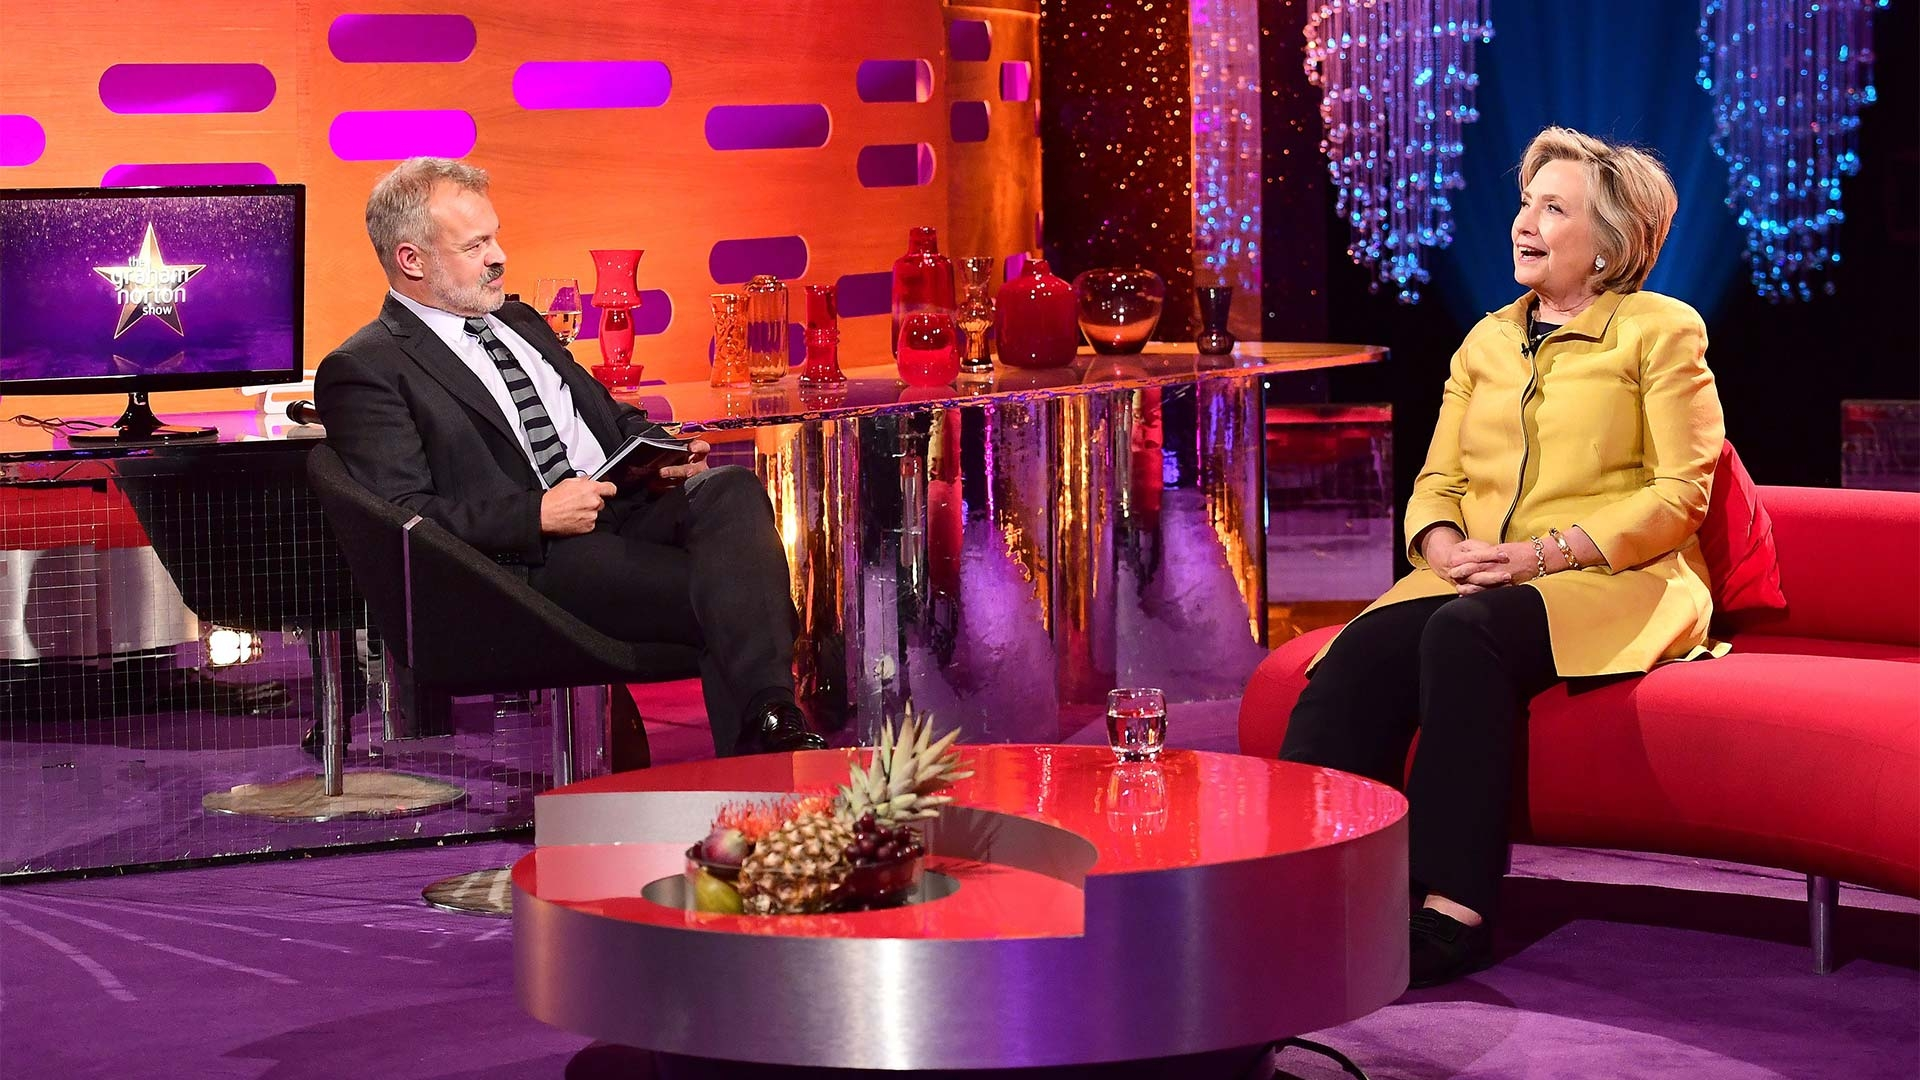 The Graham Norton Show  (Series 1-24)   BBC One / So Television   The BAFTA award winning series features the biggest stars from the worlds of film, theatre and music. The Graham Norton Show regularly reaches a weekly UK audience of over 4 million viewers on BBC One as well as millions of international viewers watching in several territories across the world. The multi-award winning show is about to start it's 24th series in the Autumn of 2018.